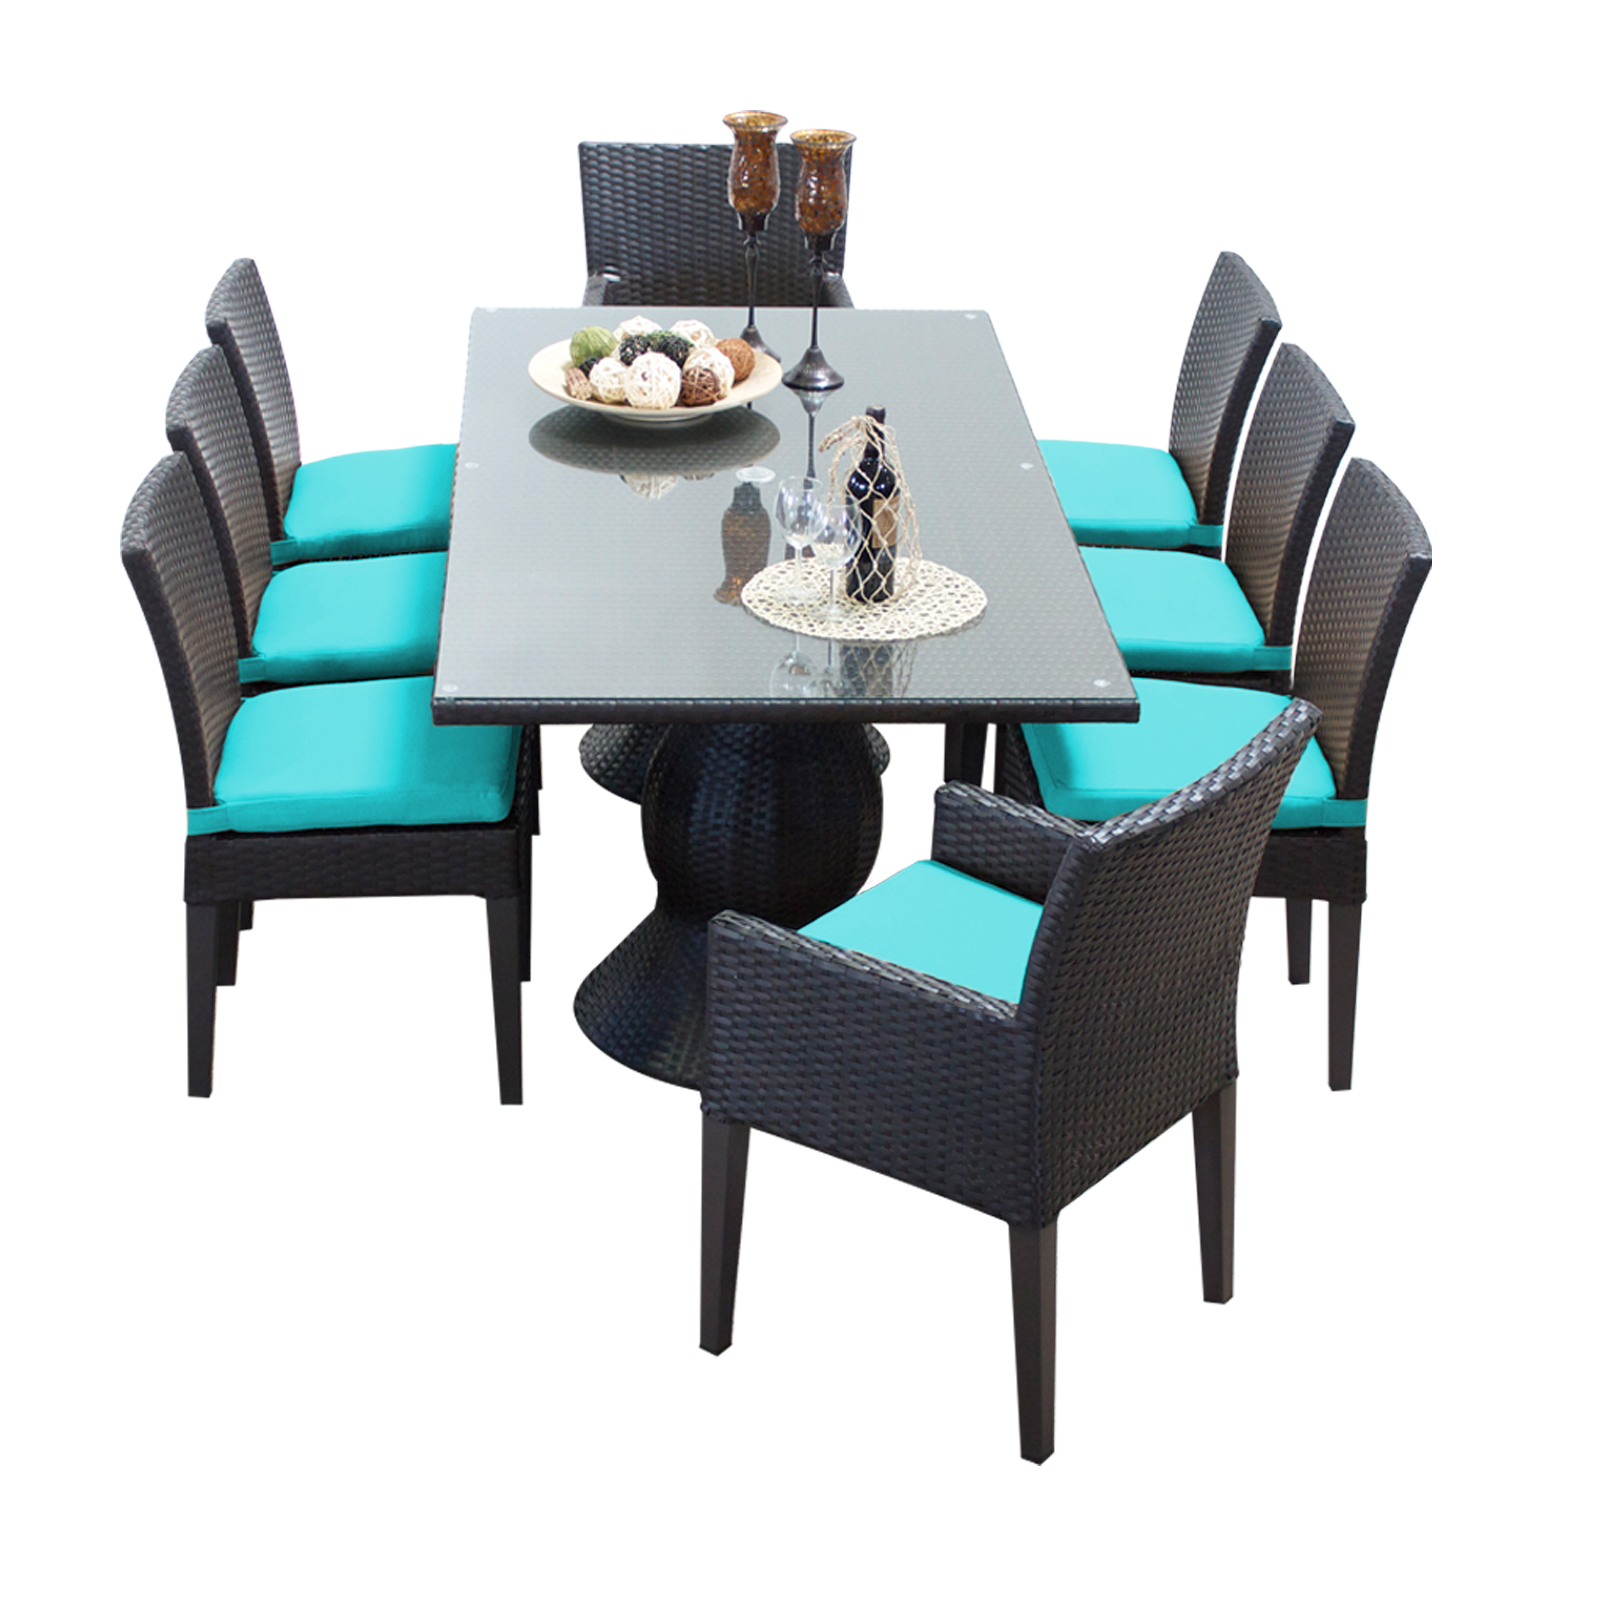 Saturn Rectangular Outdoor Patio Dining Table With 8 Chairs